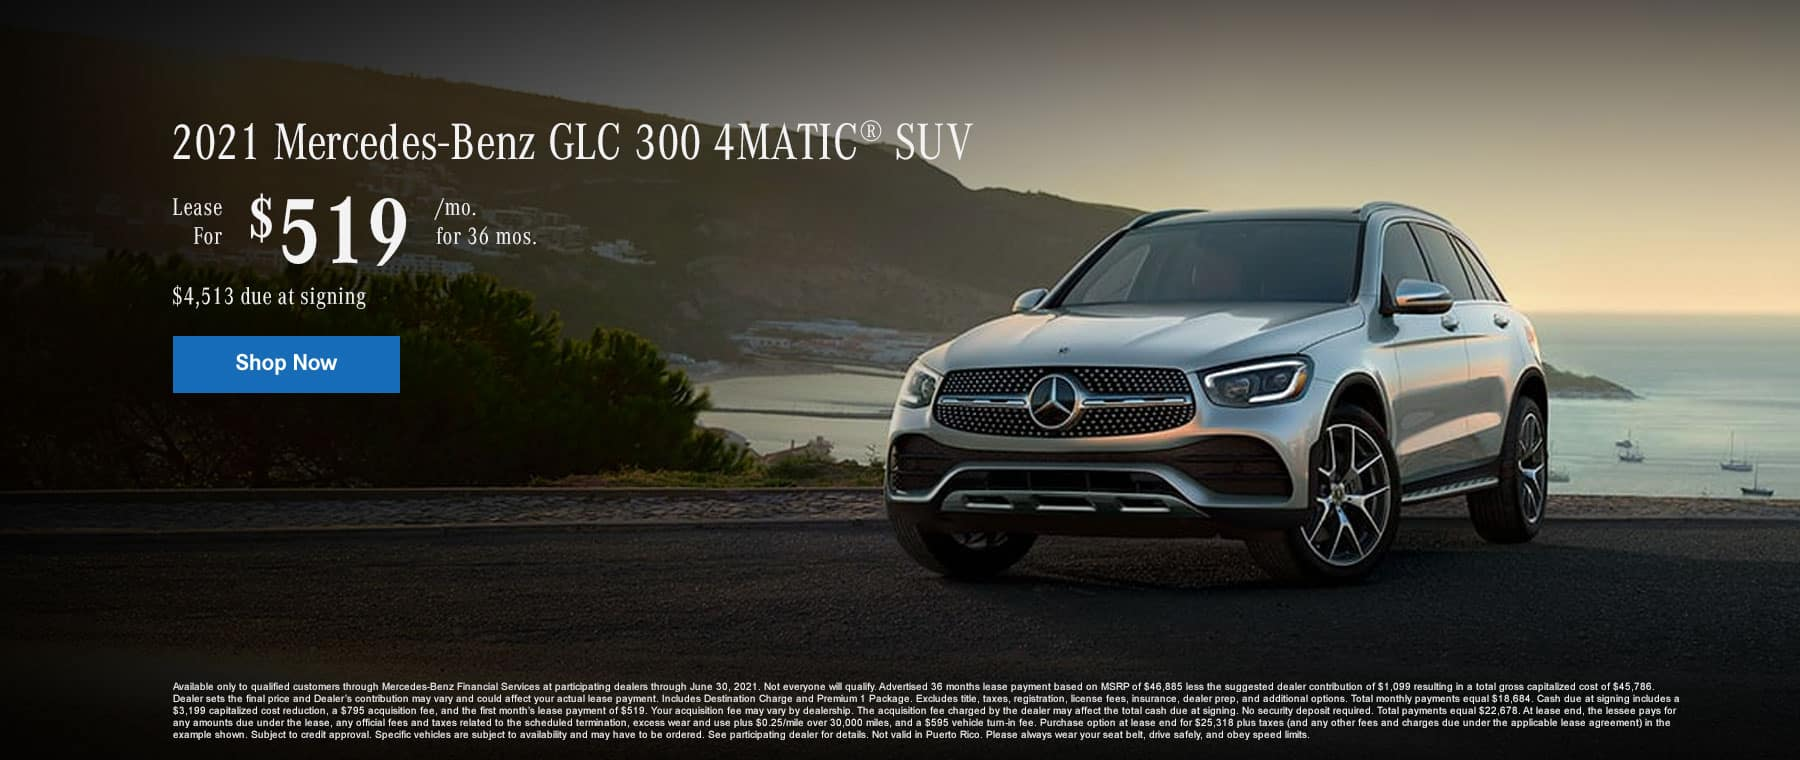 2021 Mercedes-Benz GLC 300 4MATIC® SUV Lease for $519/month for 36 months. $4,513 due at signing